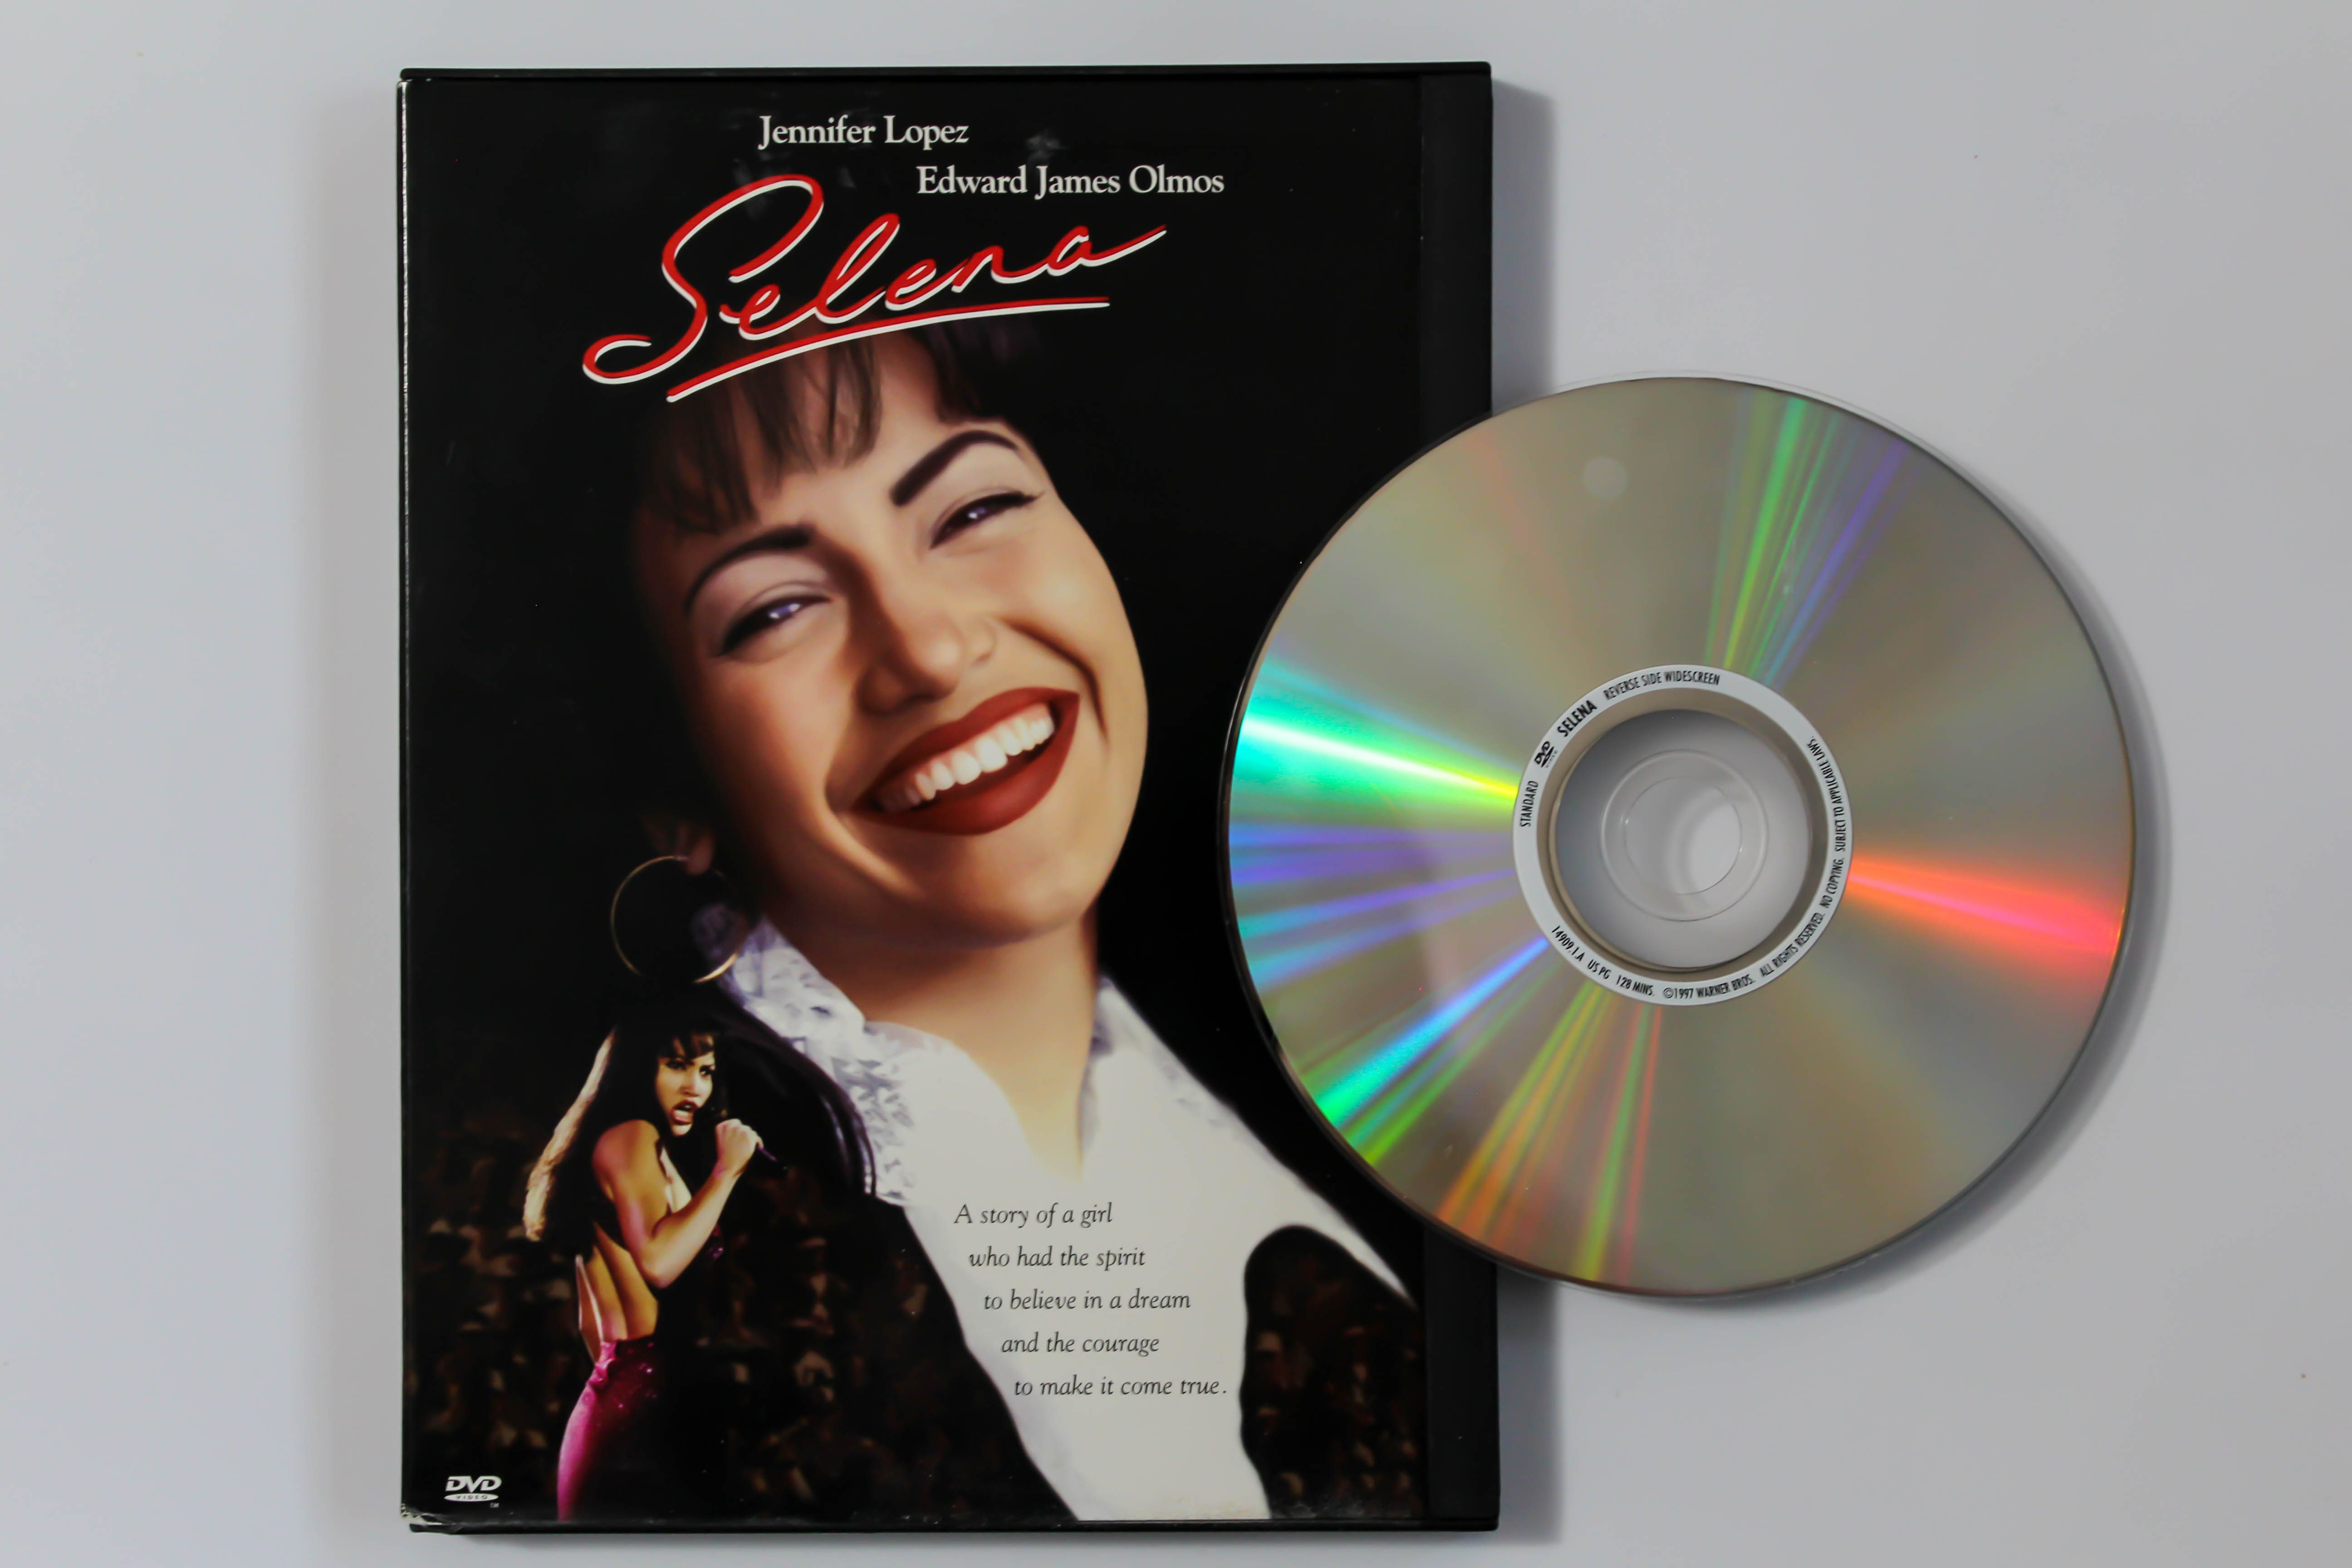 The DVD cover of 'Selena' is seen.